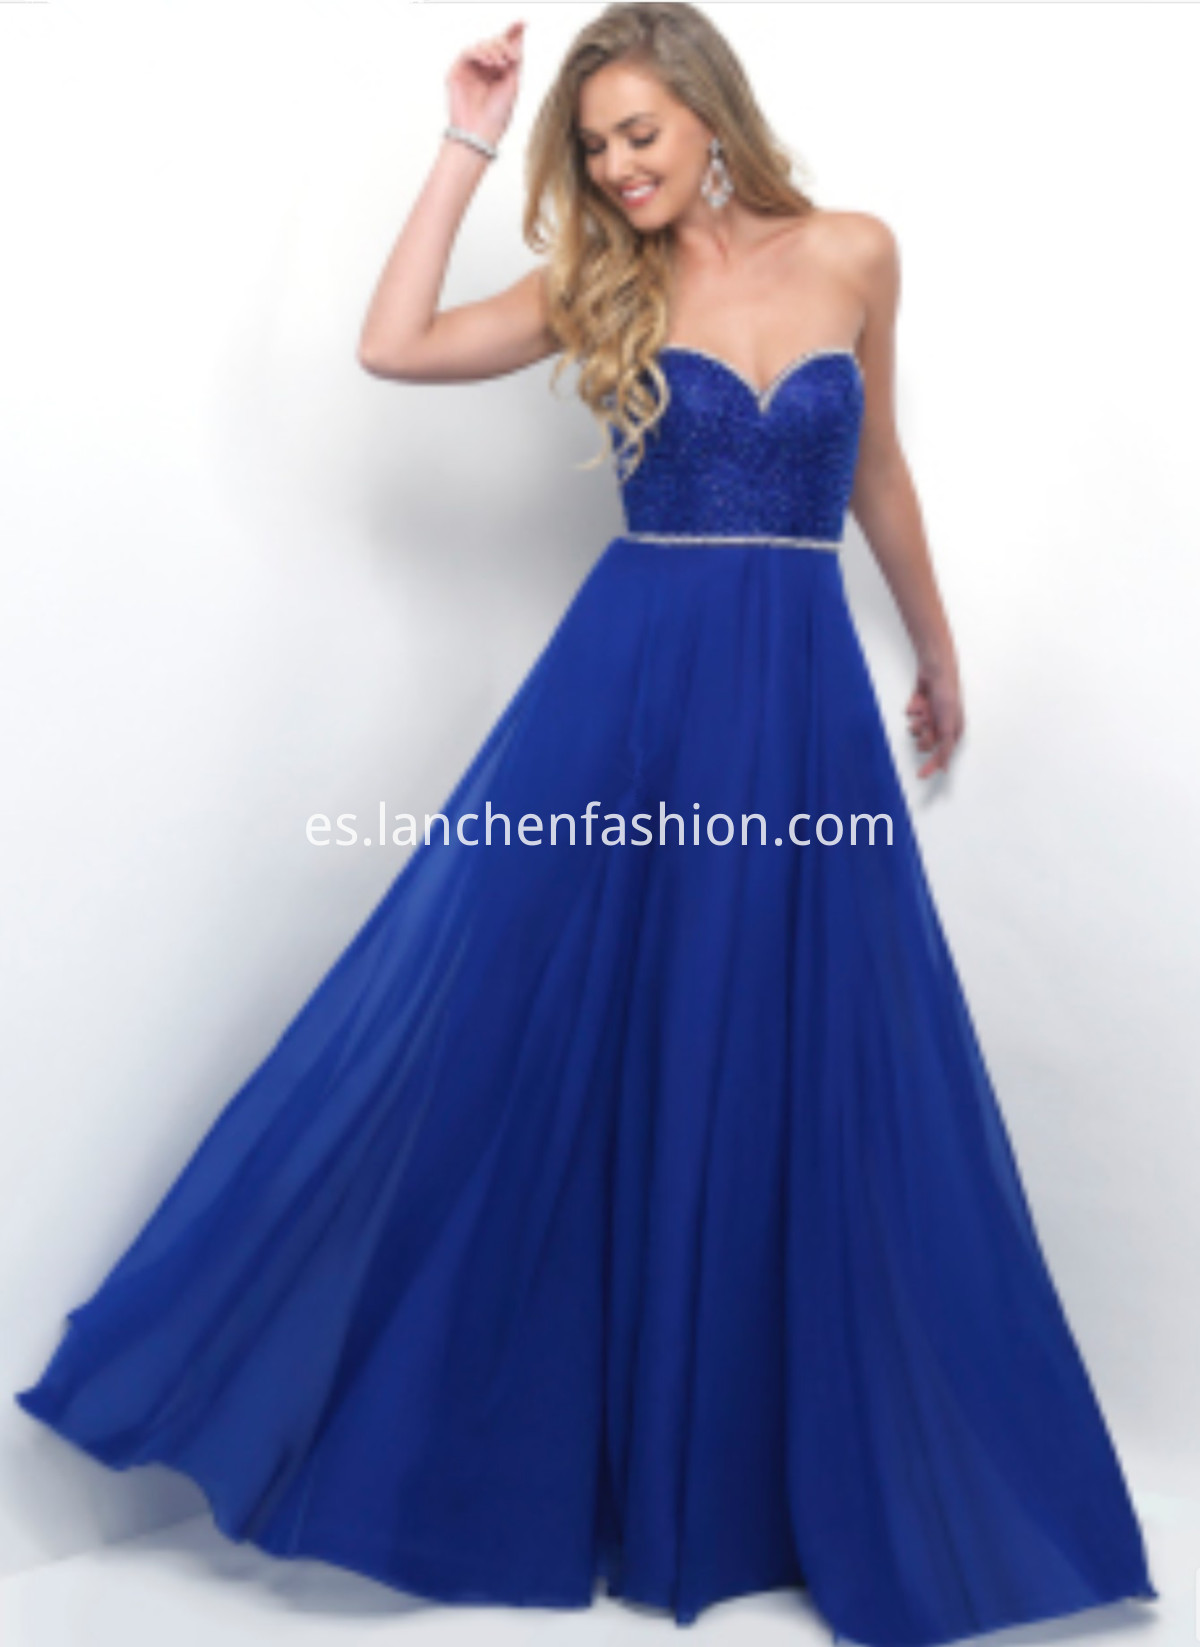 Chiffon Long Prom Dresses